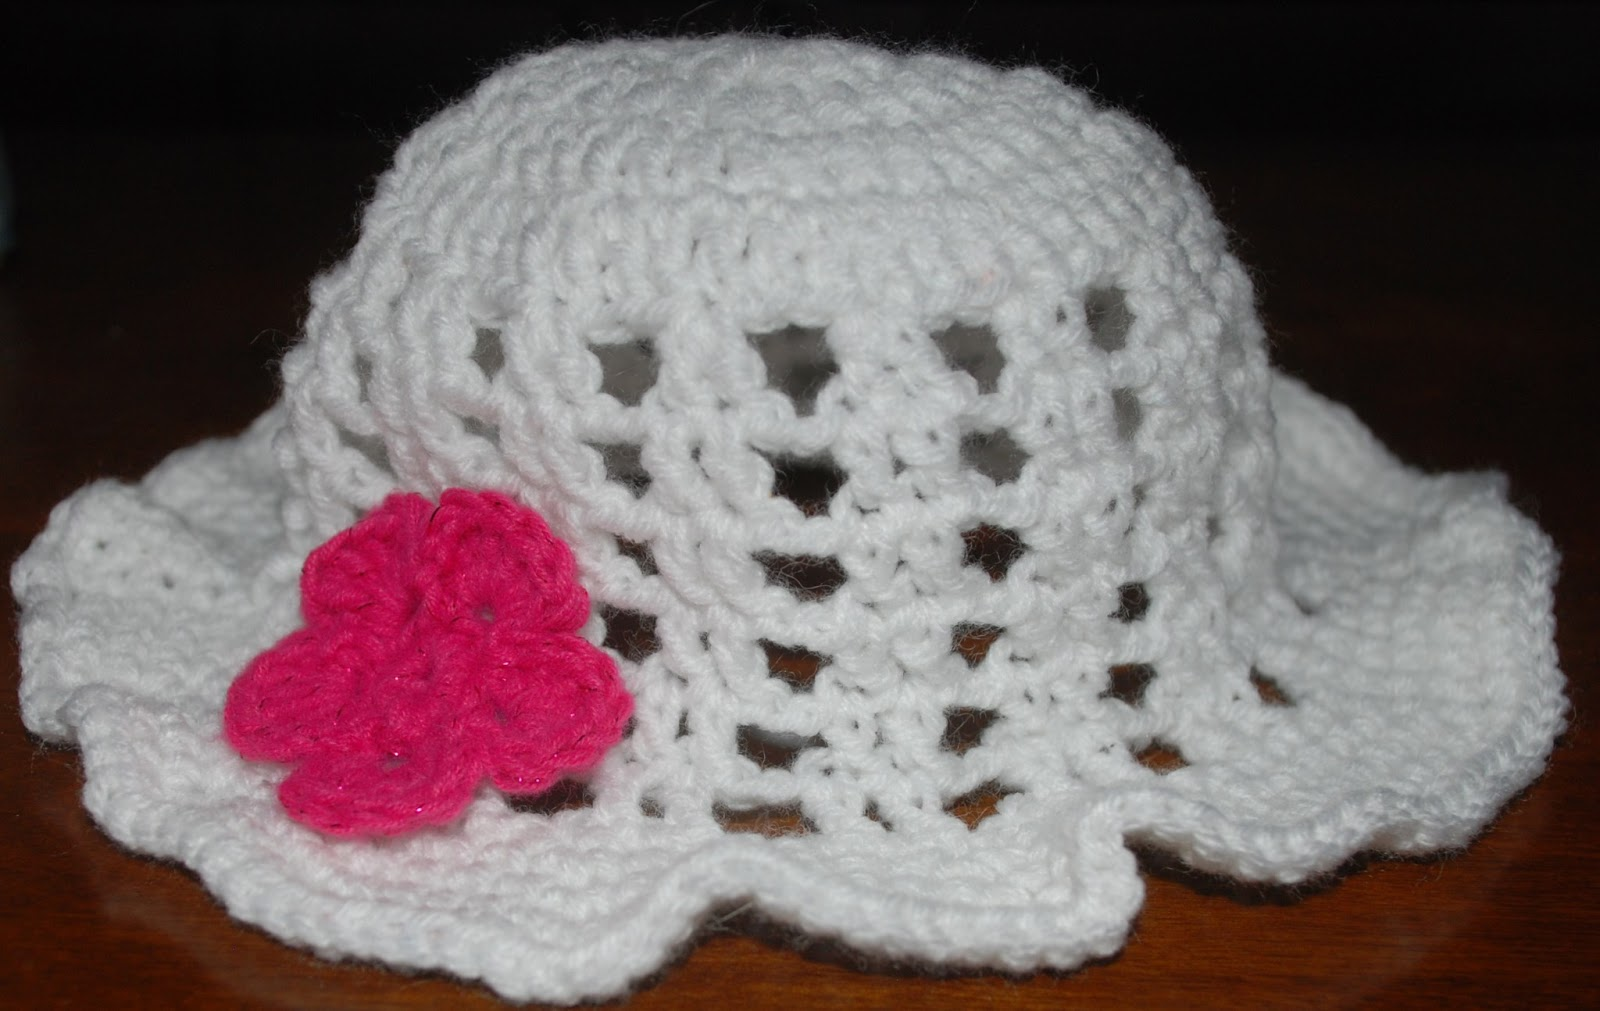 Free Crochet Pattern For Baby Floppy Hats : Amys Crochet Creative Creations: Crochet Floppy Sun Hat